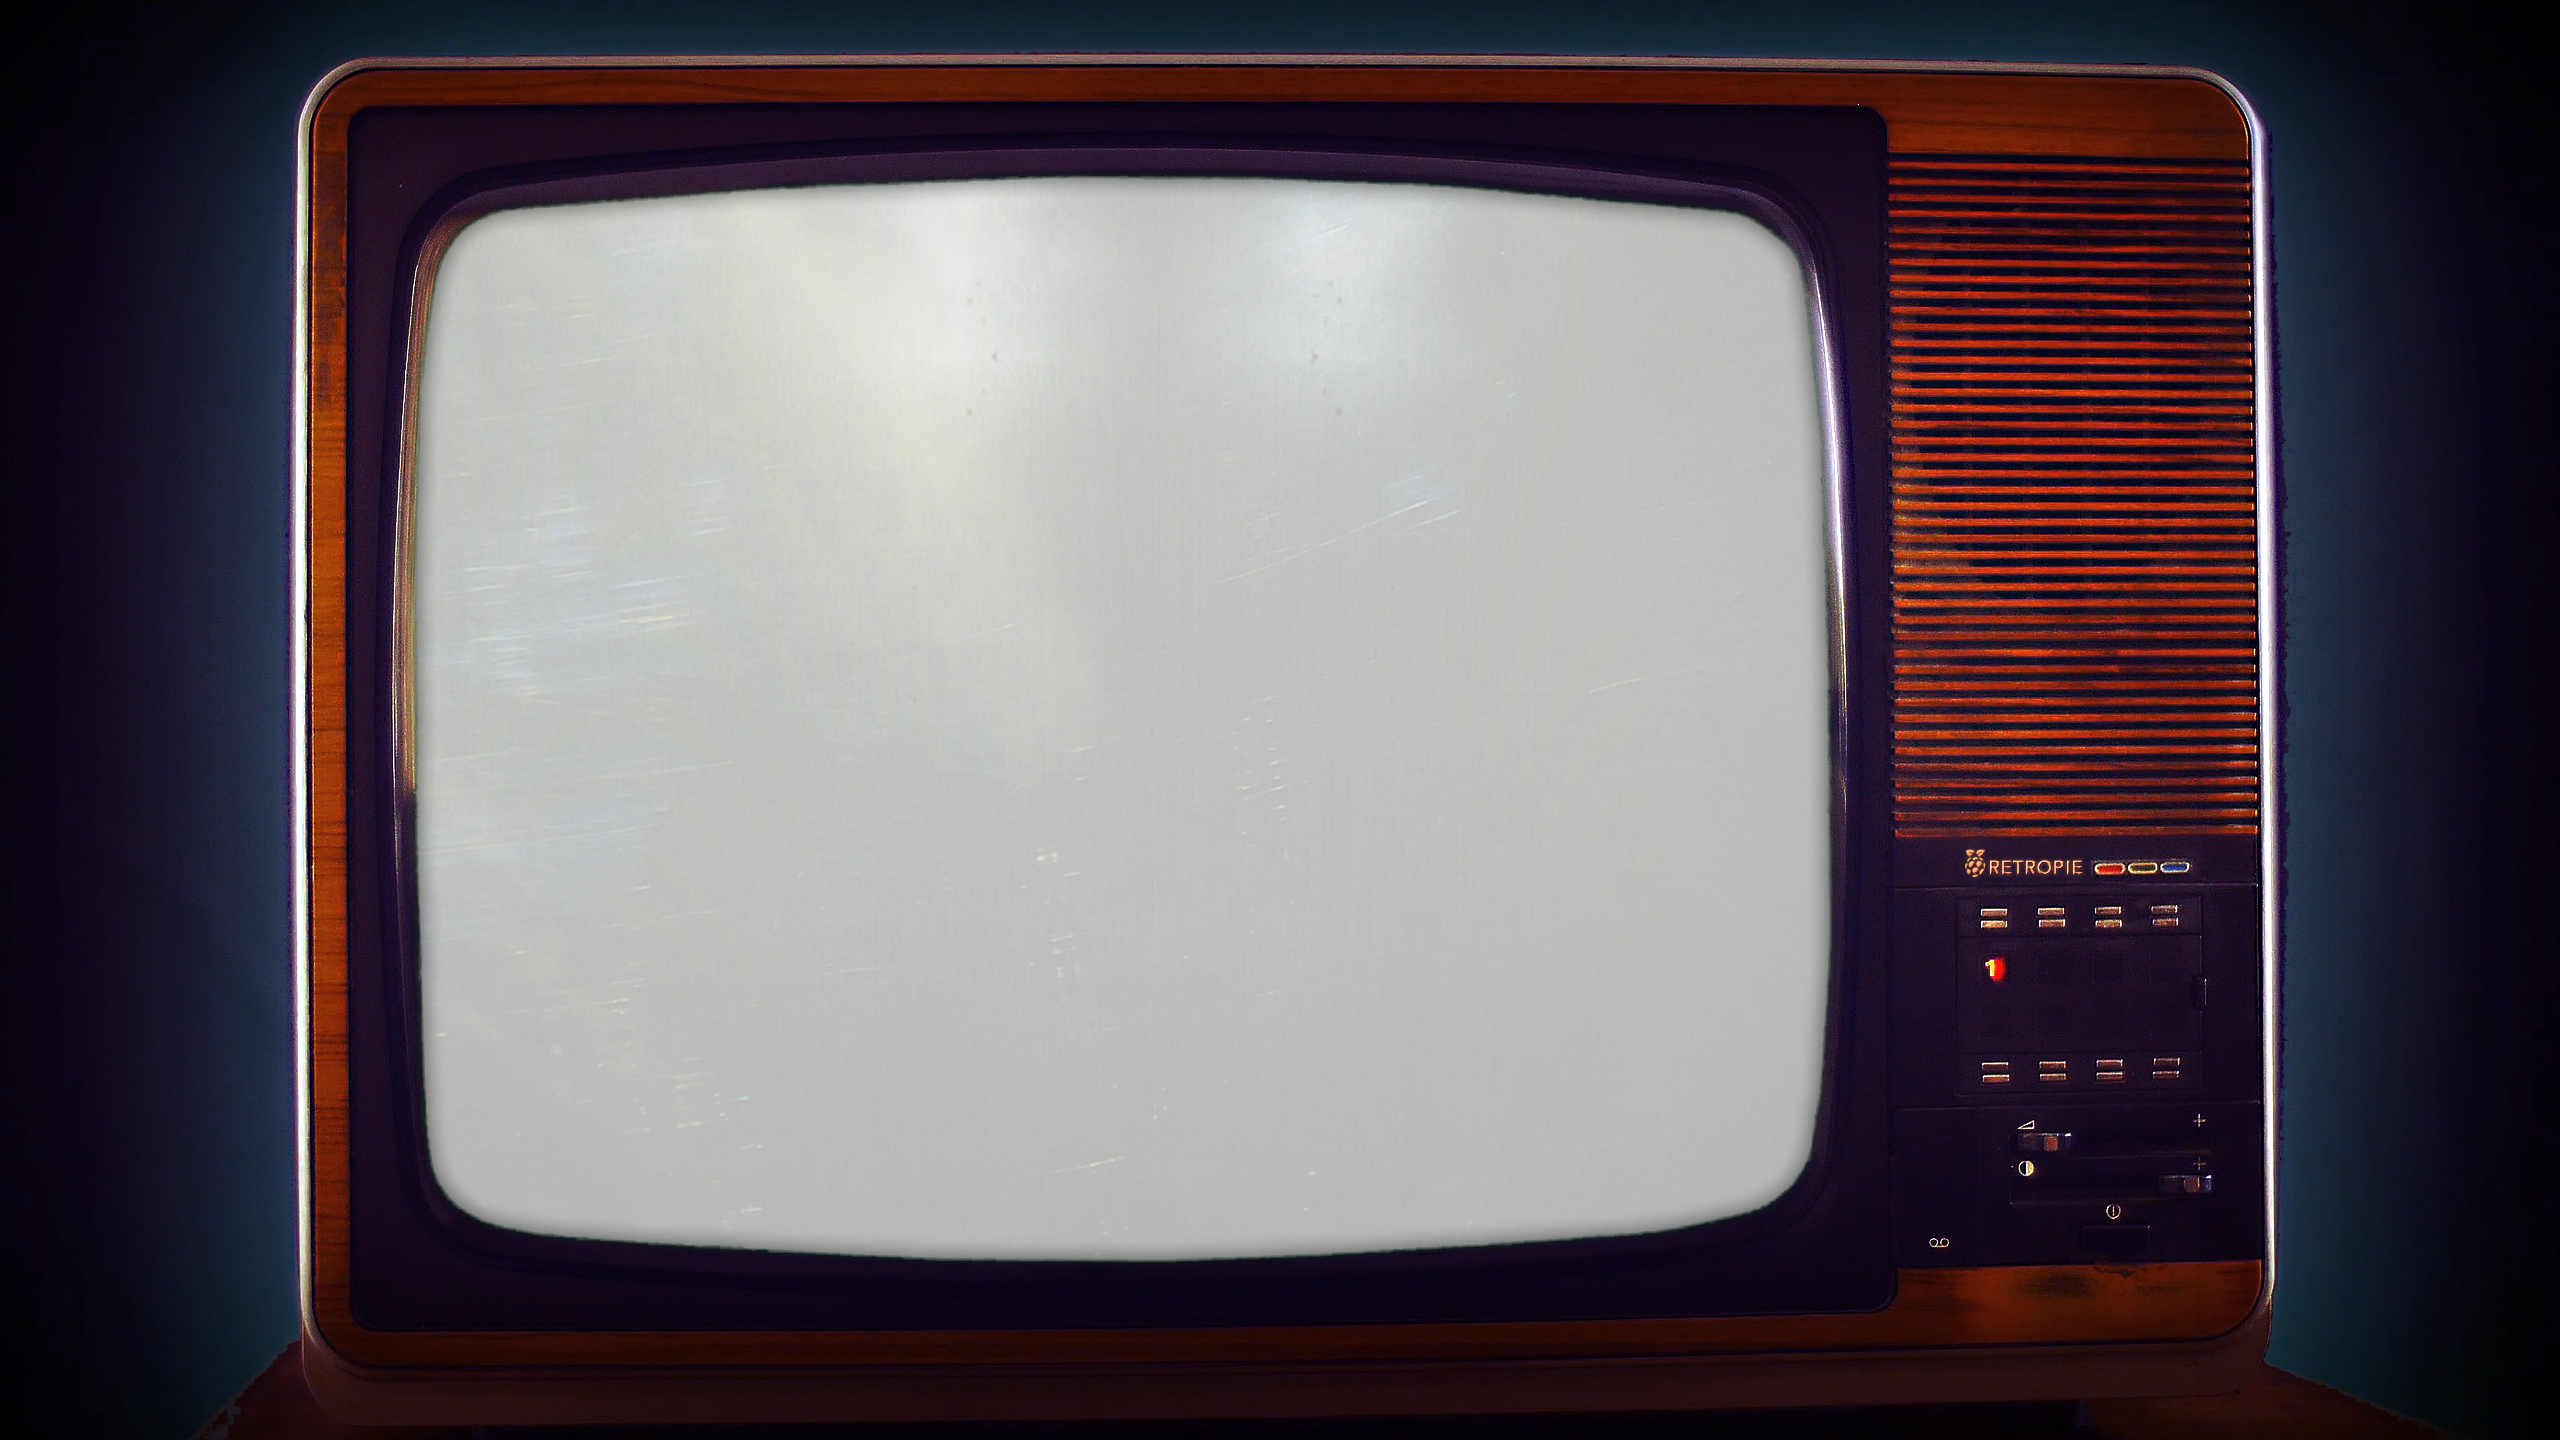 Tv overlay png. Just started with retropie